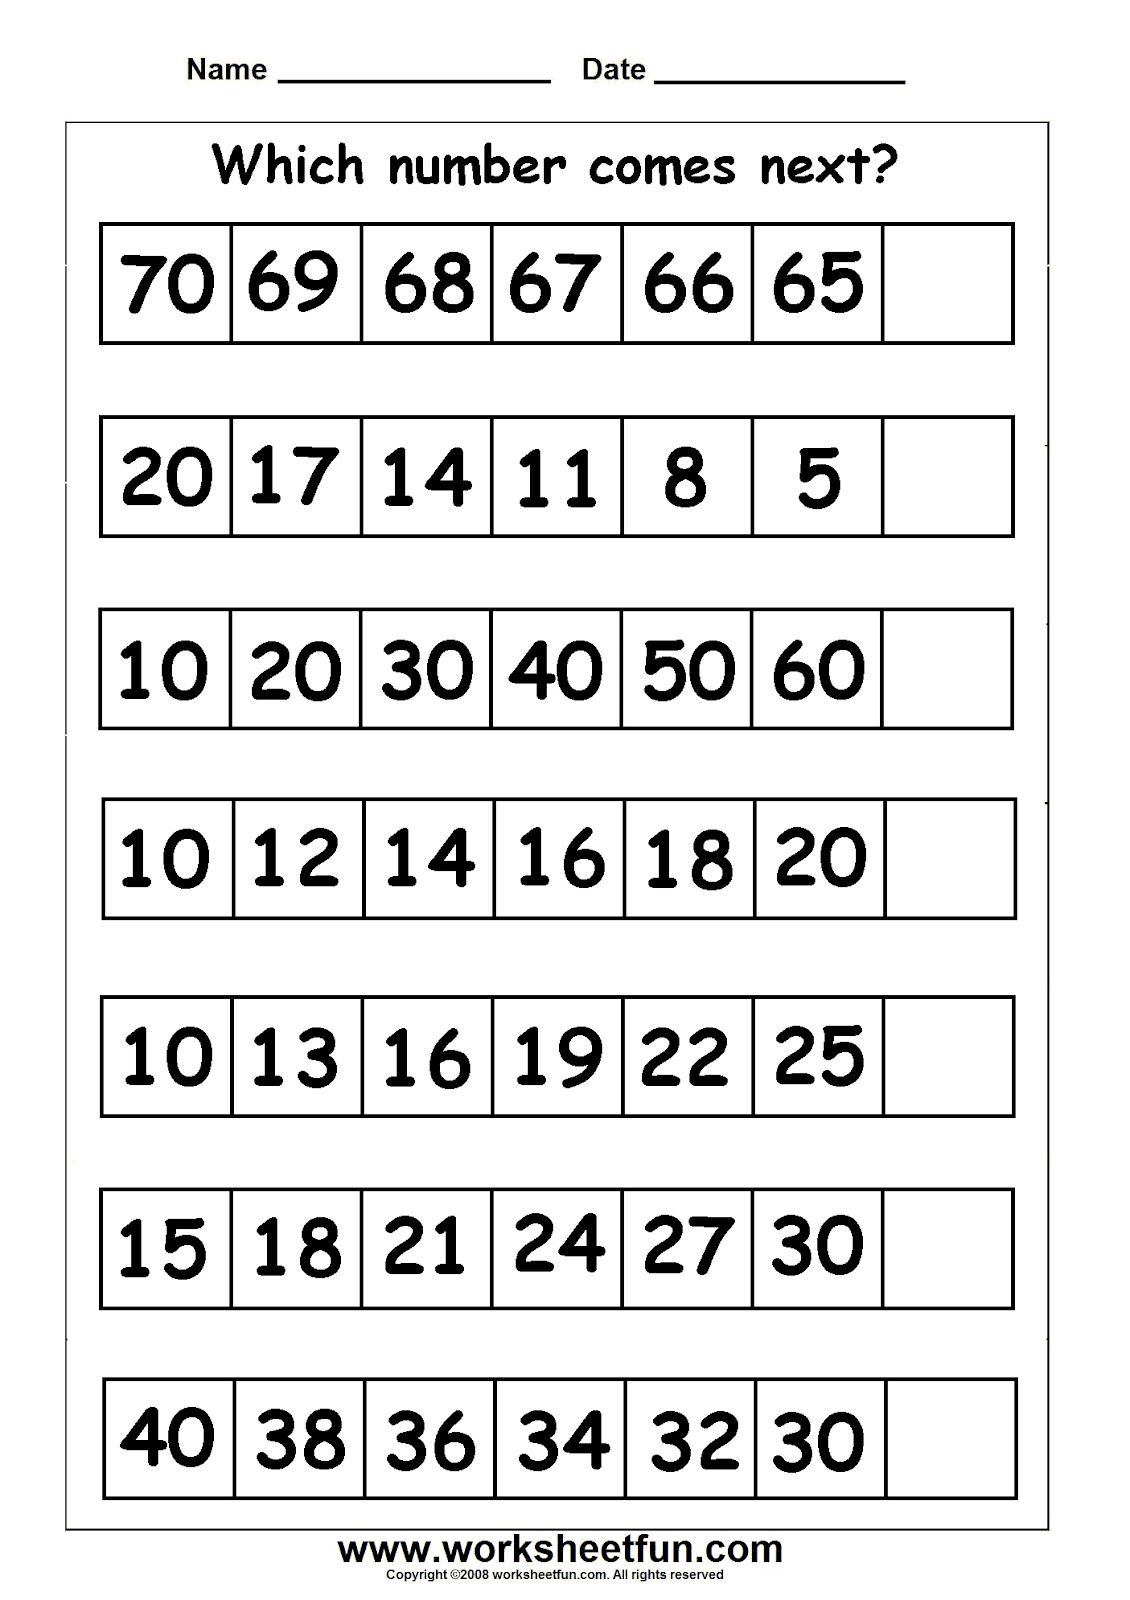 Worksheetfun Free Printable Worksheets First Grade Math Worksheets First Grade Math Math Patterns